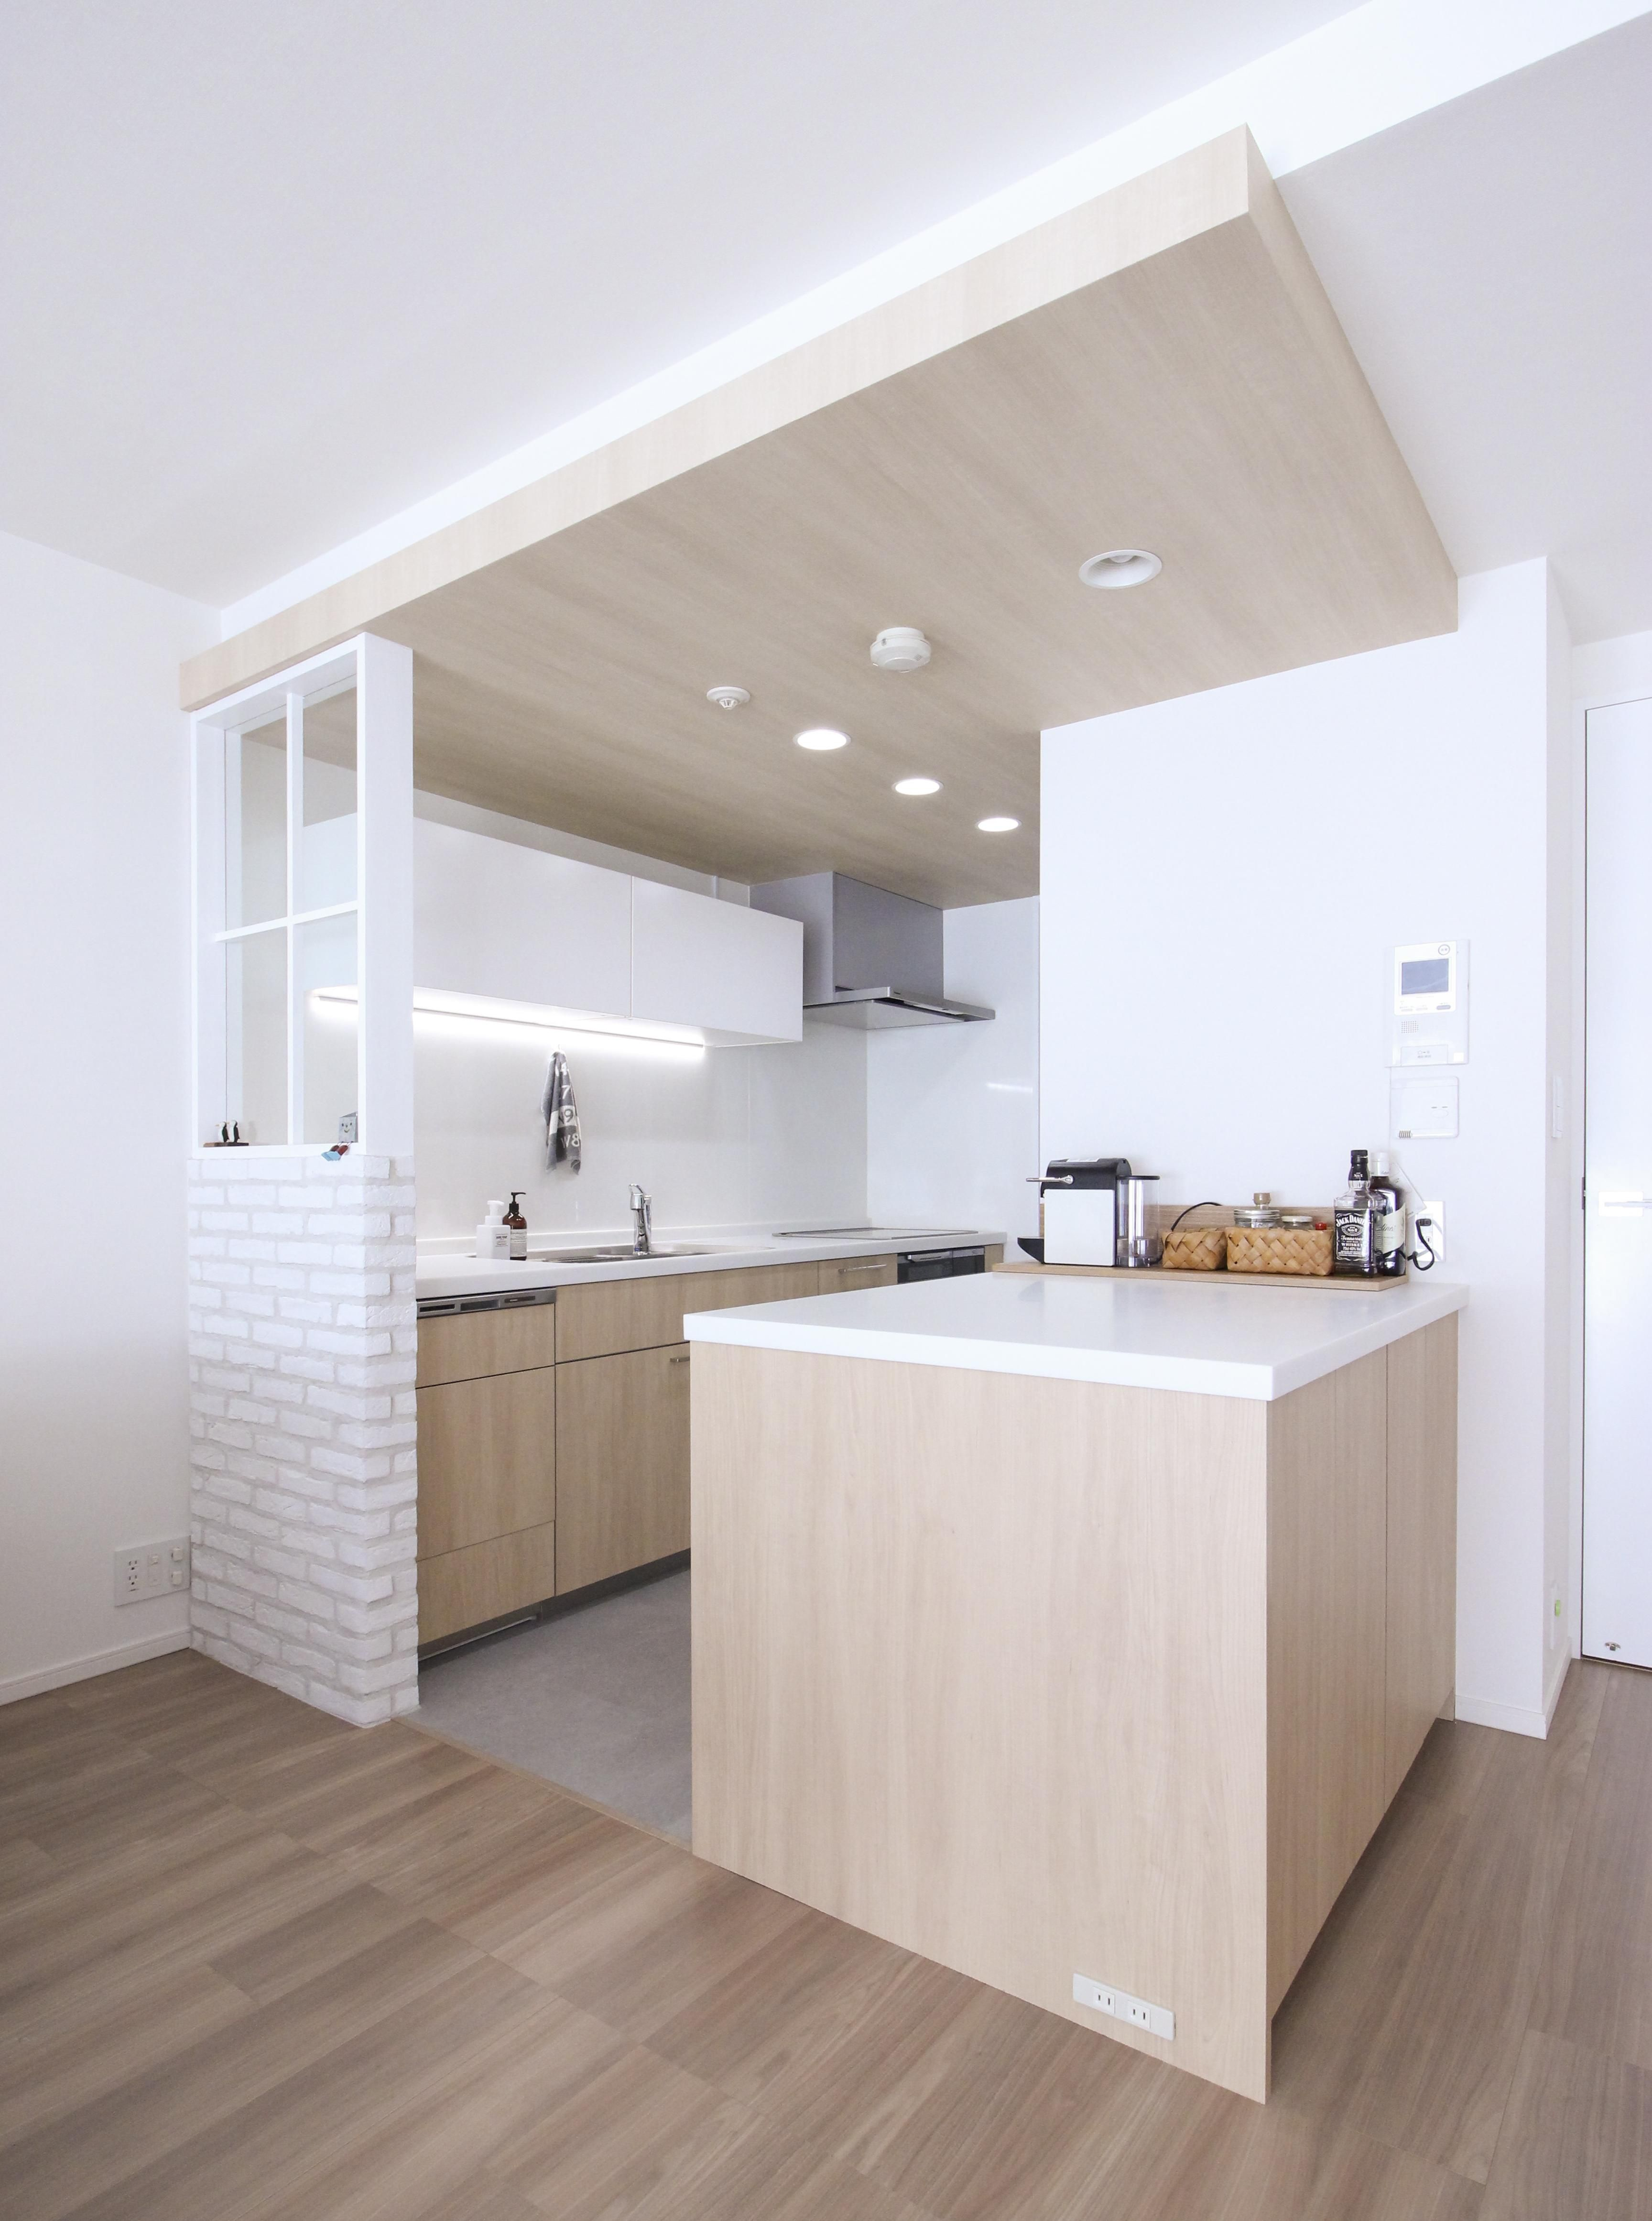 House Renovations, House Ideas, Kitchen Ideas, Muji House, Muji Style,  Island Bar, Oriental Style, Small Places, Interior Designing